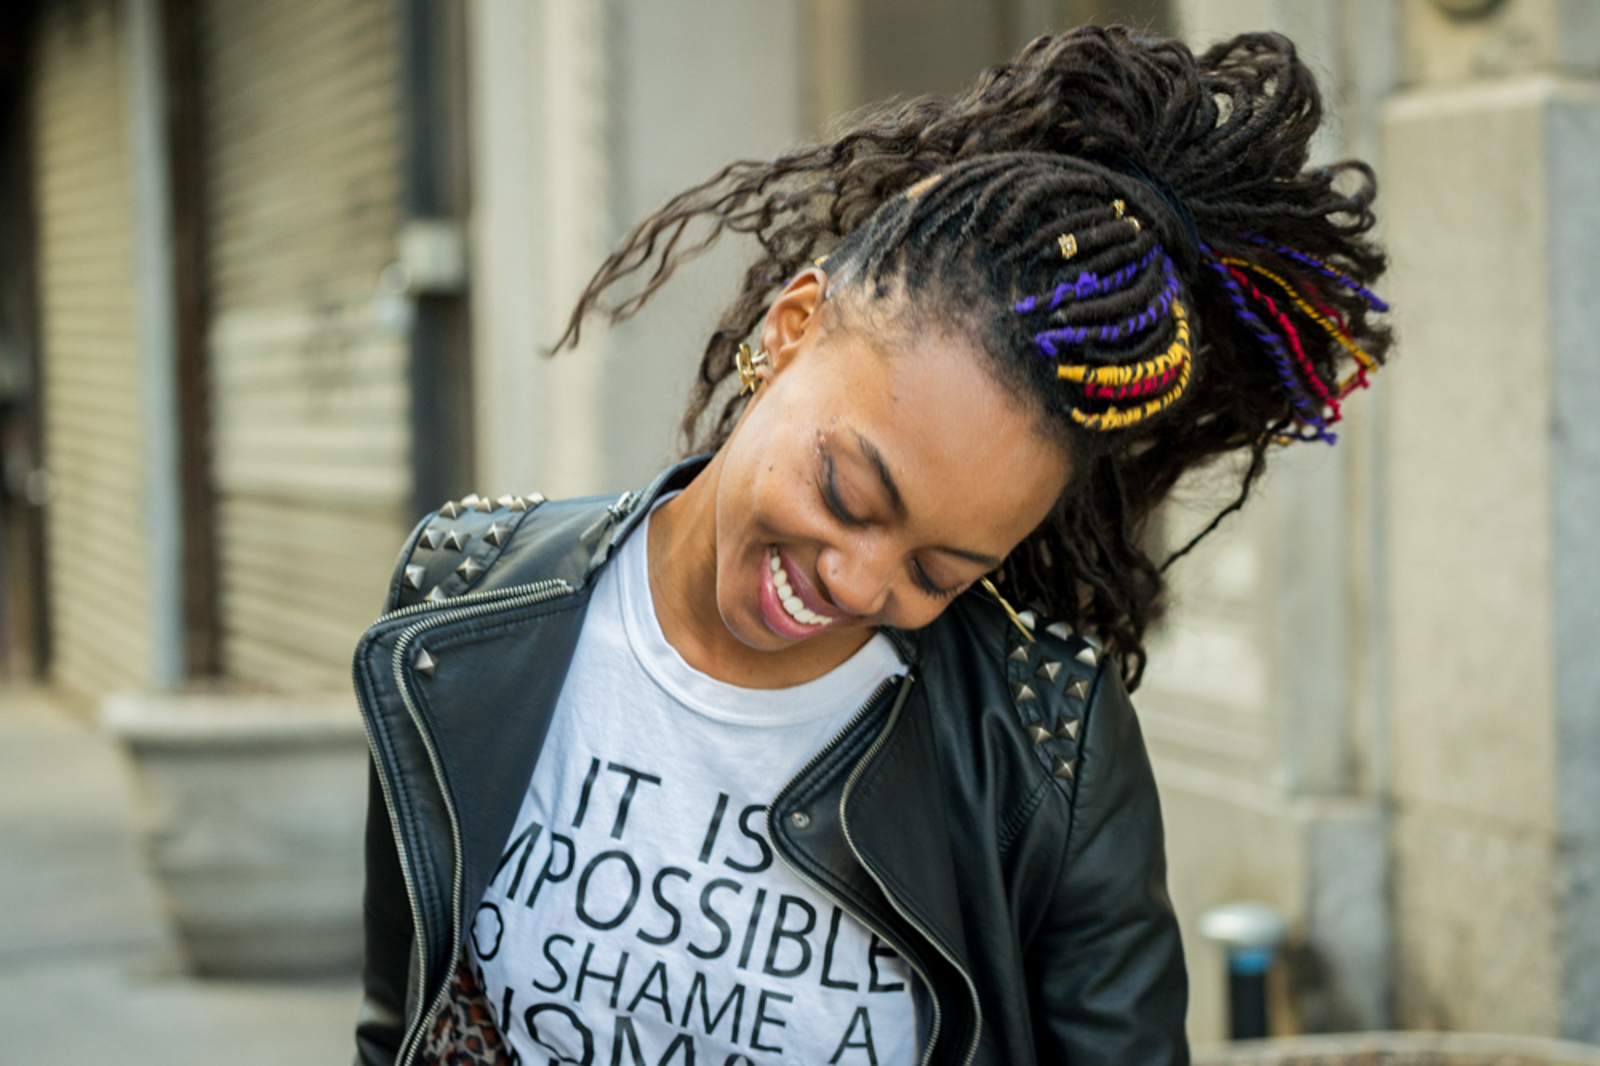 Portrait of woman with dreadlocks and leather jacket, smiling in motion